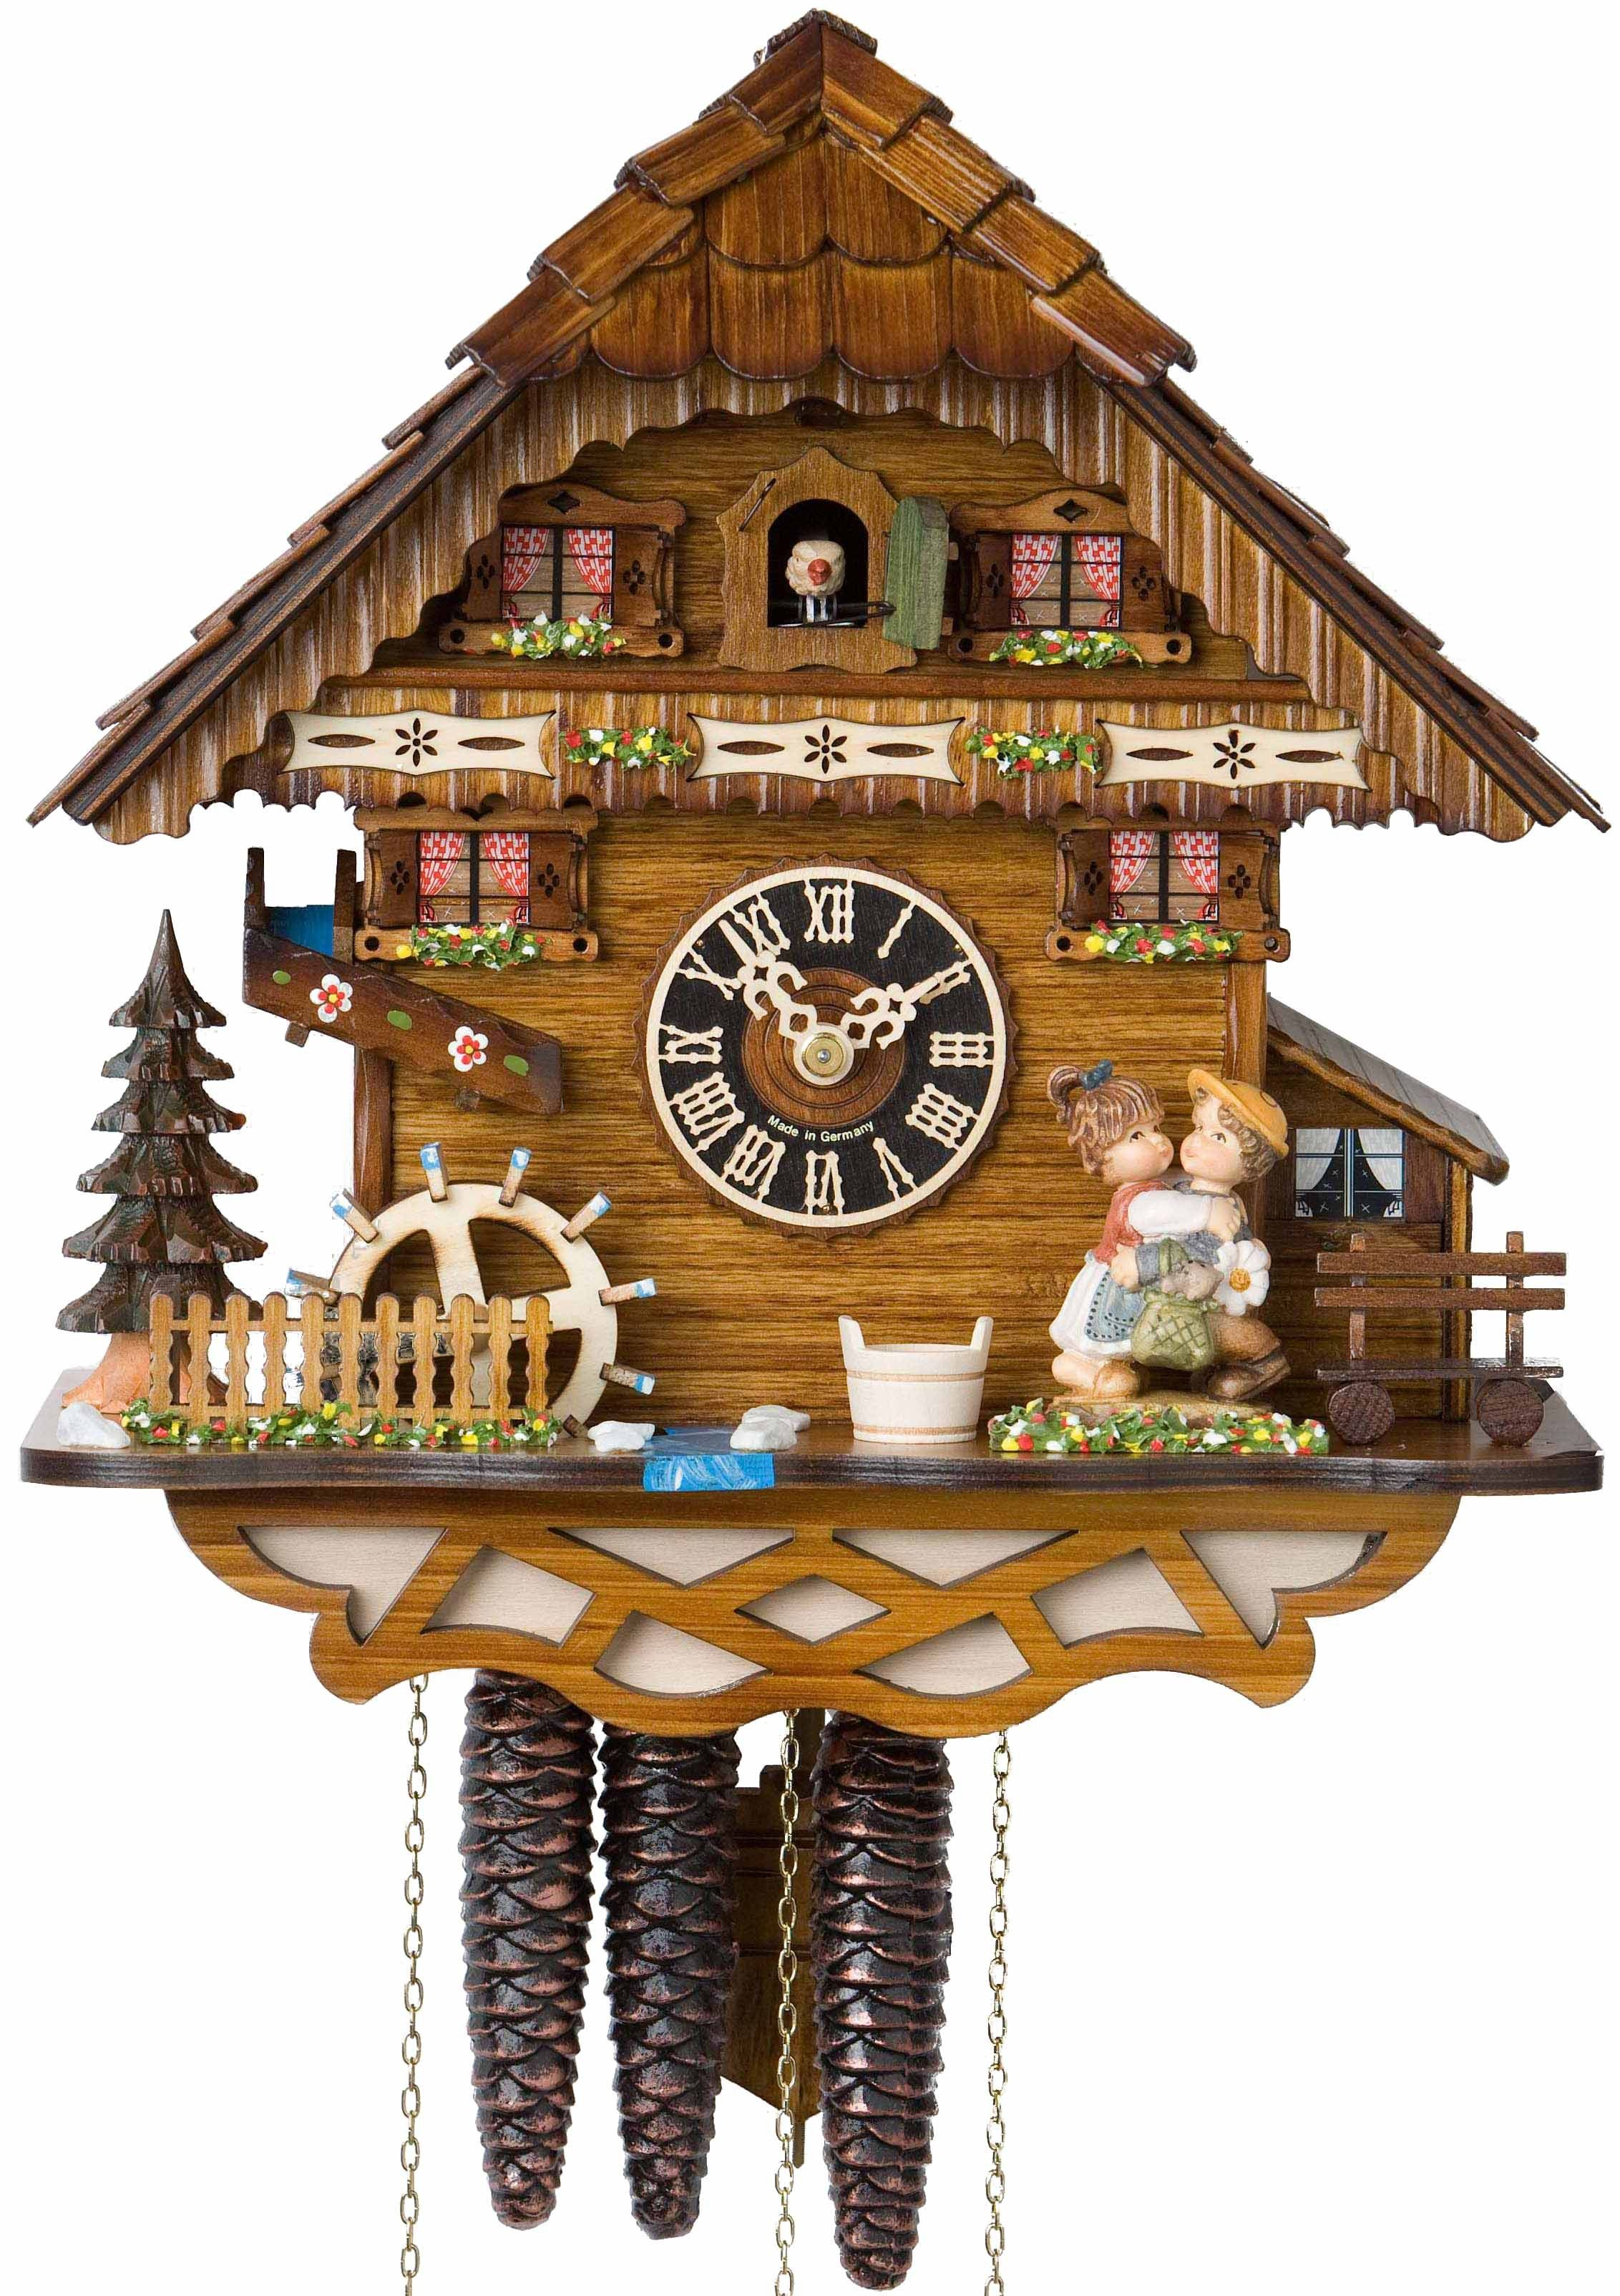 Coos coo clocks back gallery for bird coo coo clock for Www coo